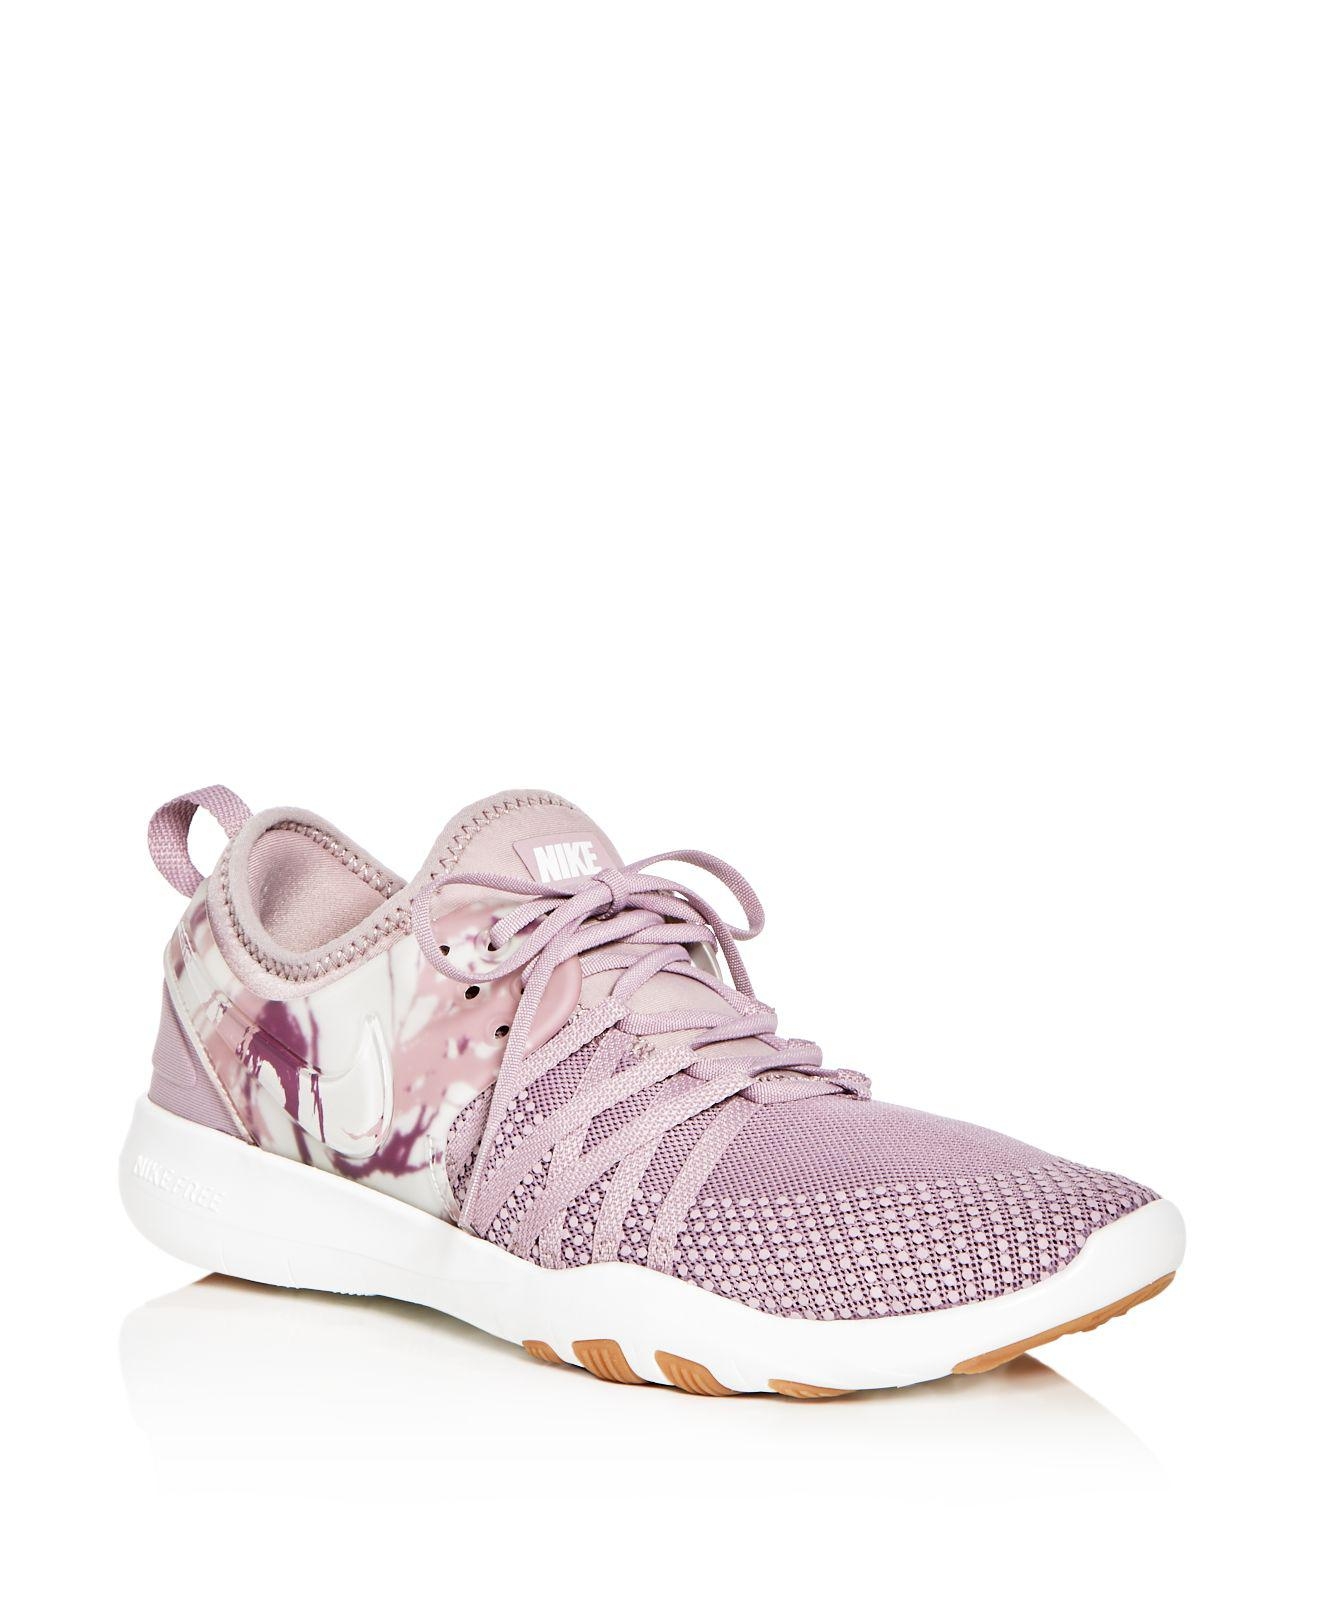 Nike. Women's Free Tr 7 Lace Up Sneakers